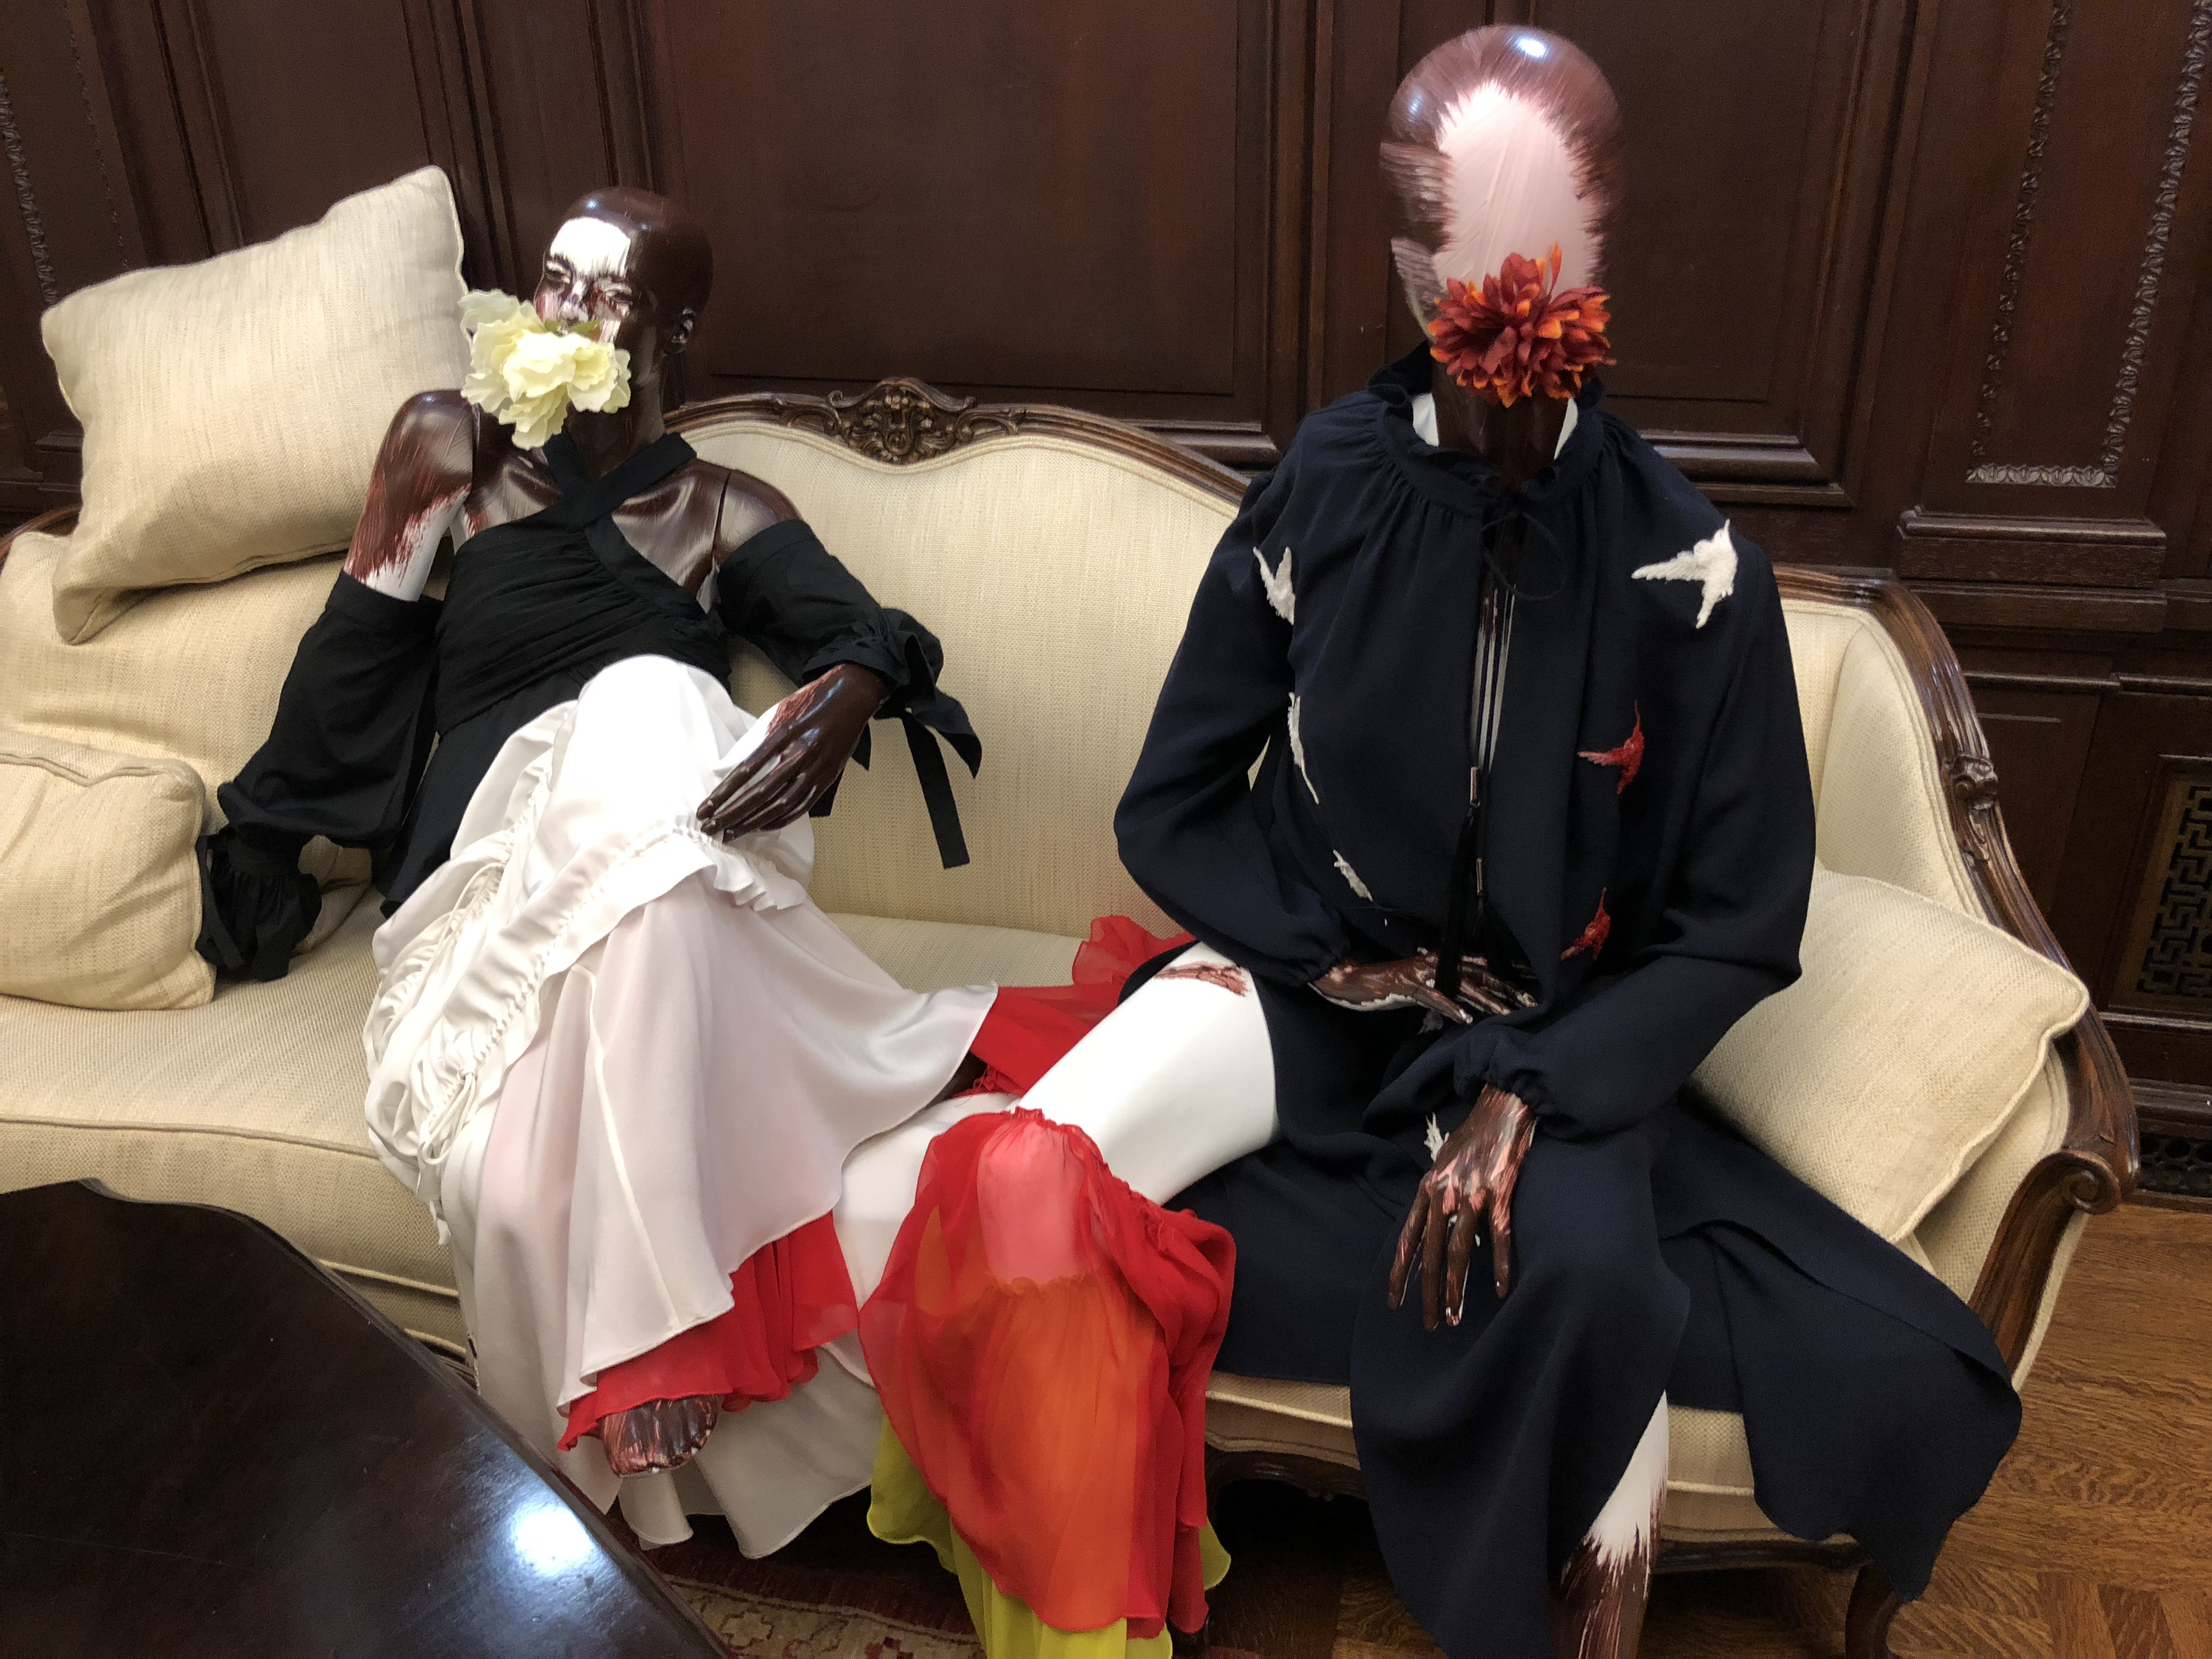 Two outfits from Azede Jean-Pierre's collection on display at the Haitian Embassy in Washington D.C. during a fashion event, Feb. 23, 2018. (Photo: S. Lemaire / VOA)